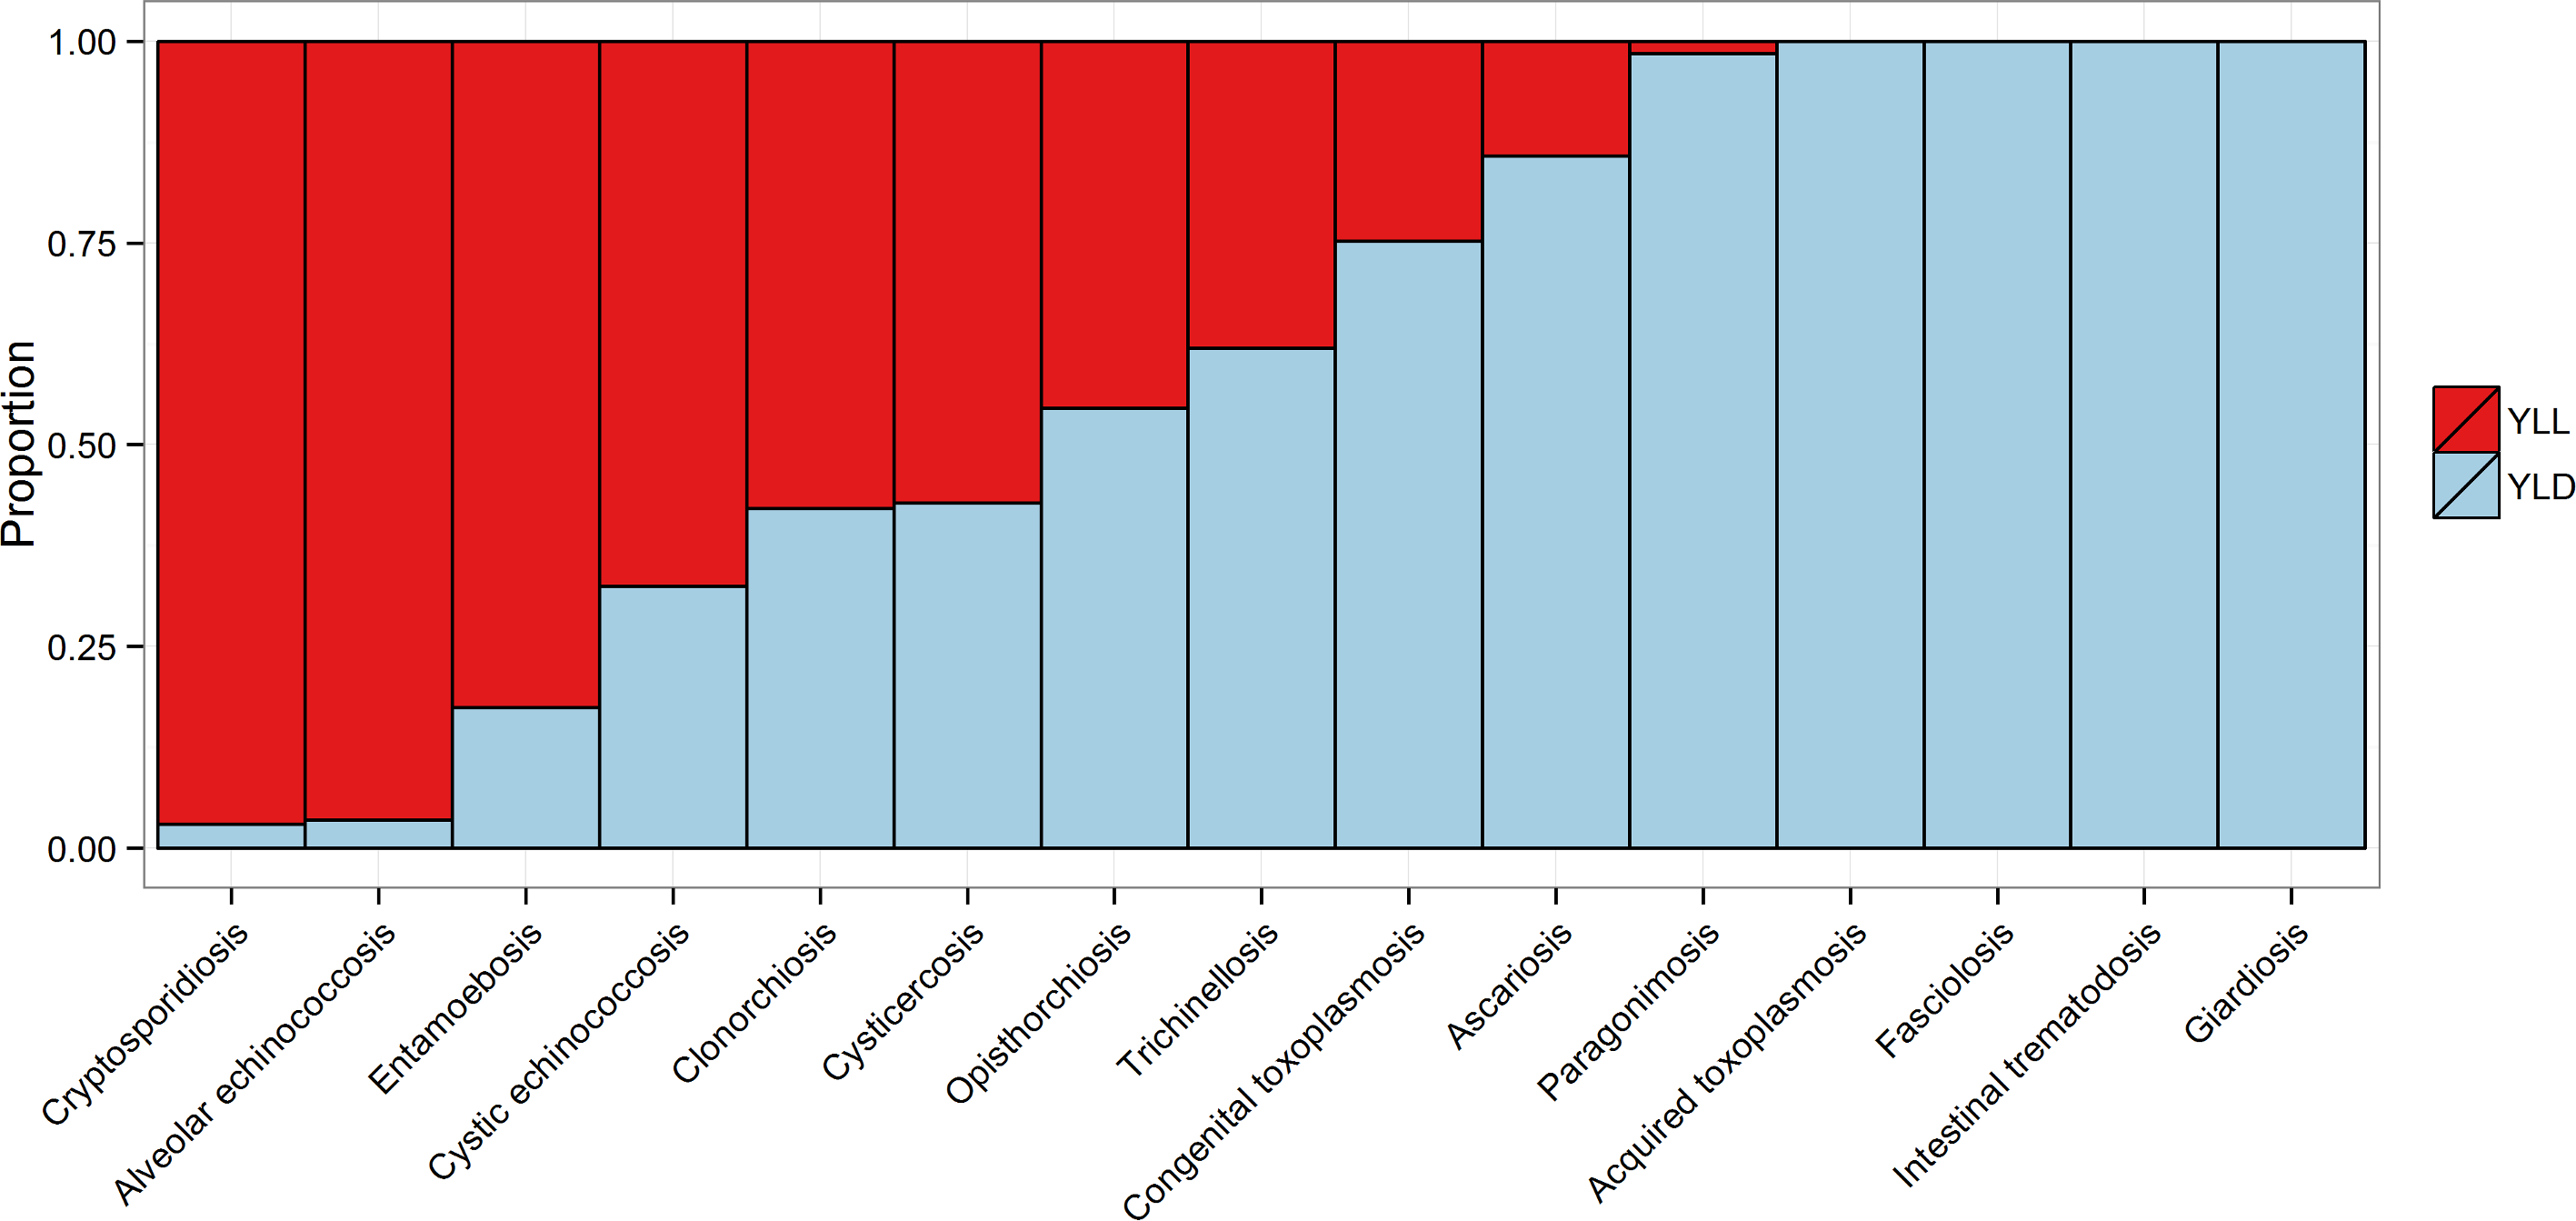 The relative proportion of the burden of each of the foodborne parasitic diseases contributed by YLLs and YLDs.